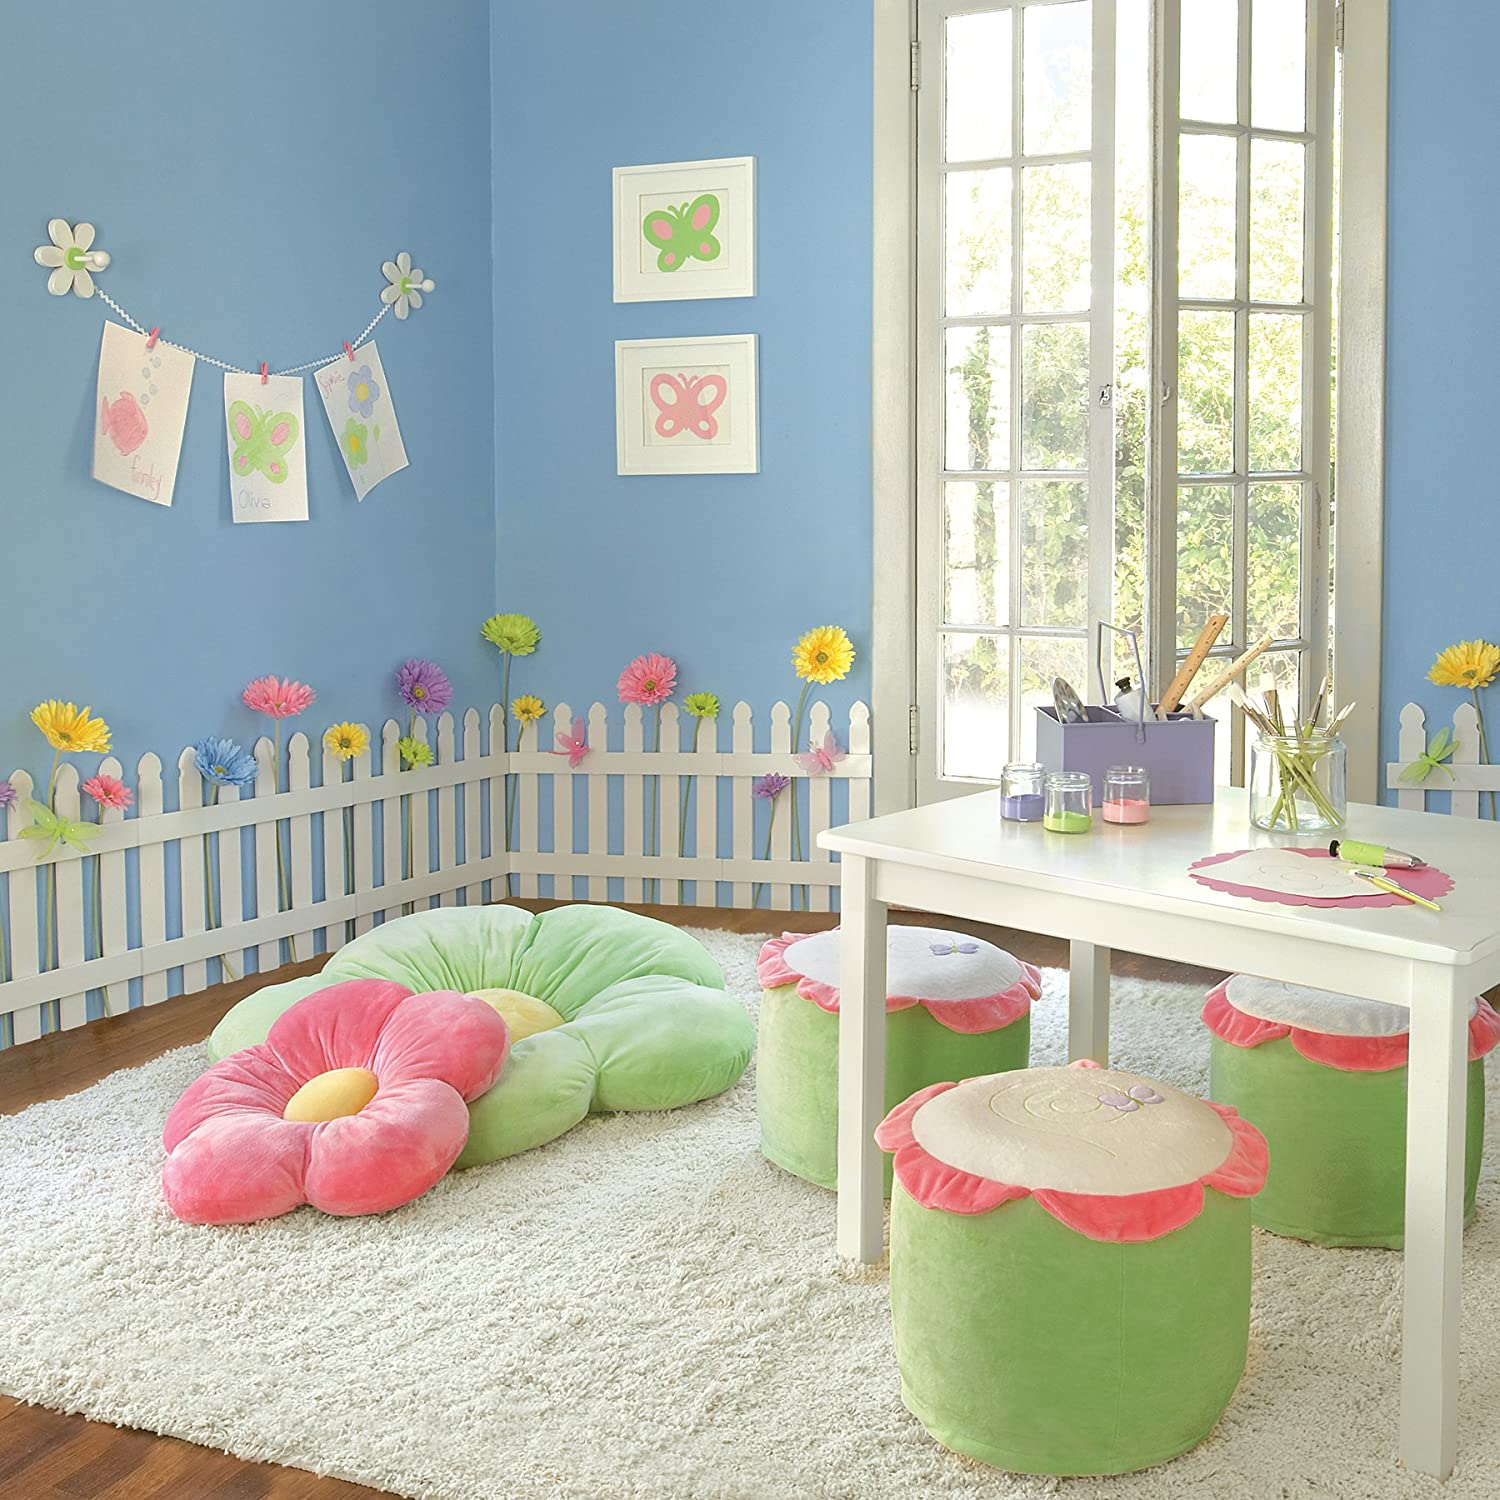 White Wooden Picket Fences For Kids Room Wall Border